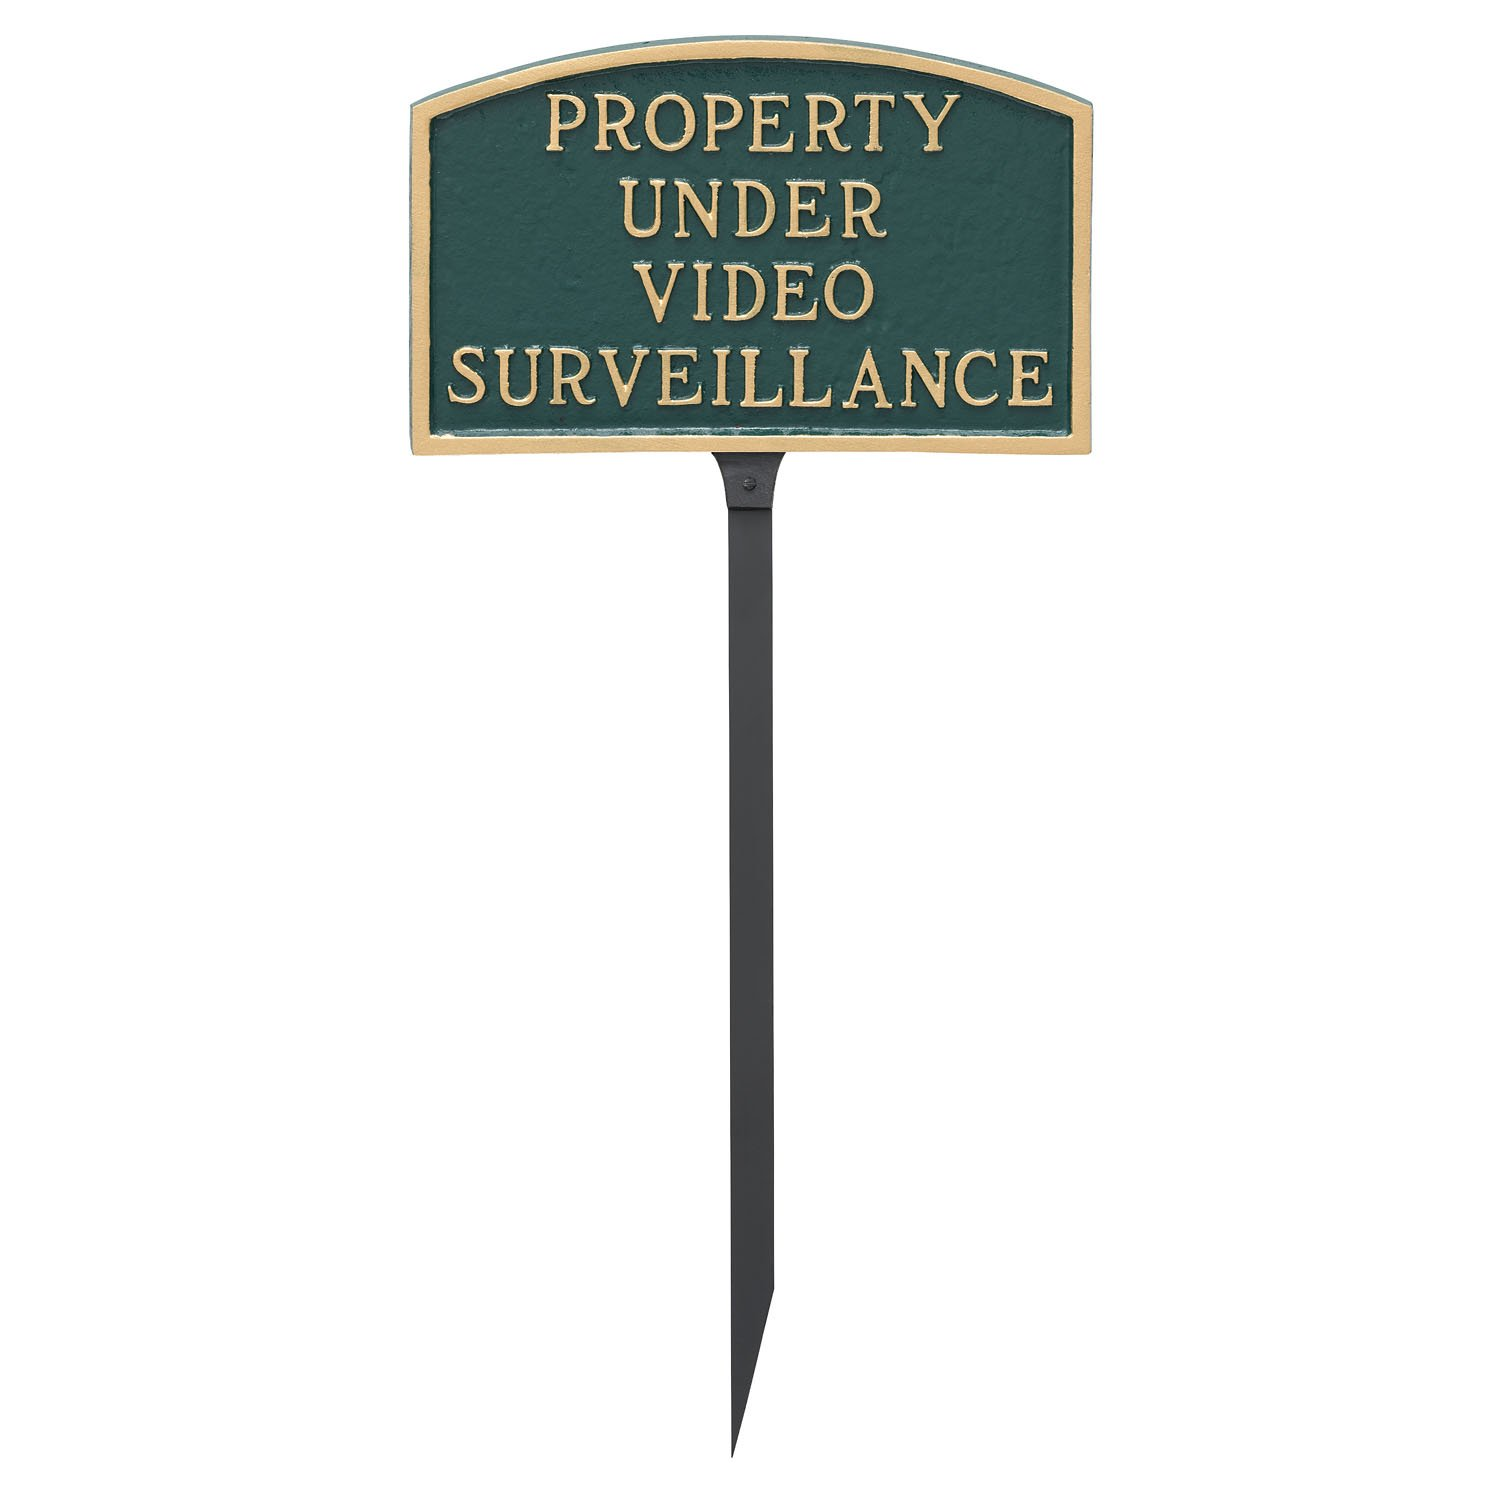 Montague Metal Products 5.5'' x 9'' Arch Property Under Video Surveillance Statement Plaque with 23'' Lawn Stake